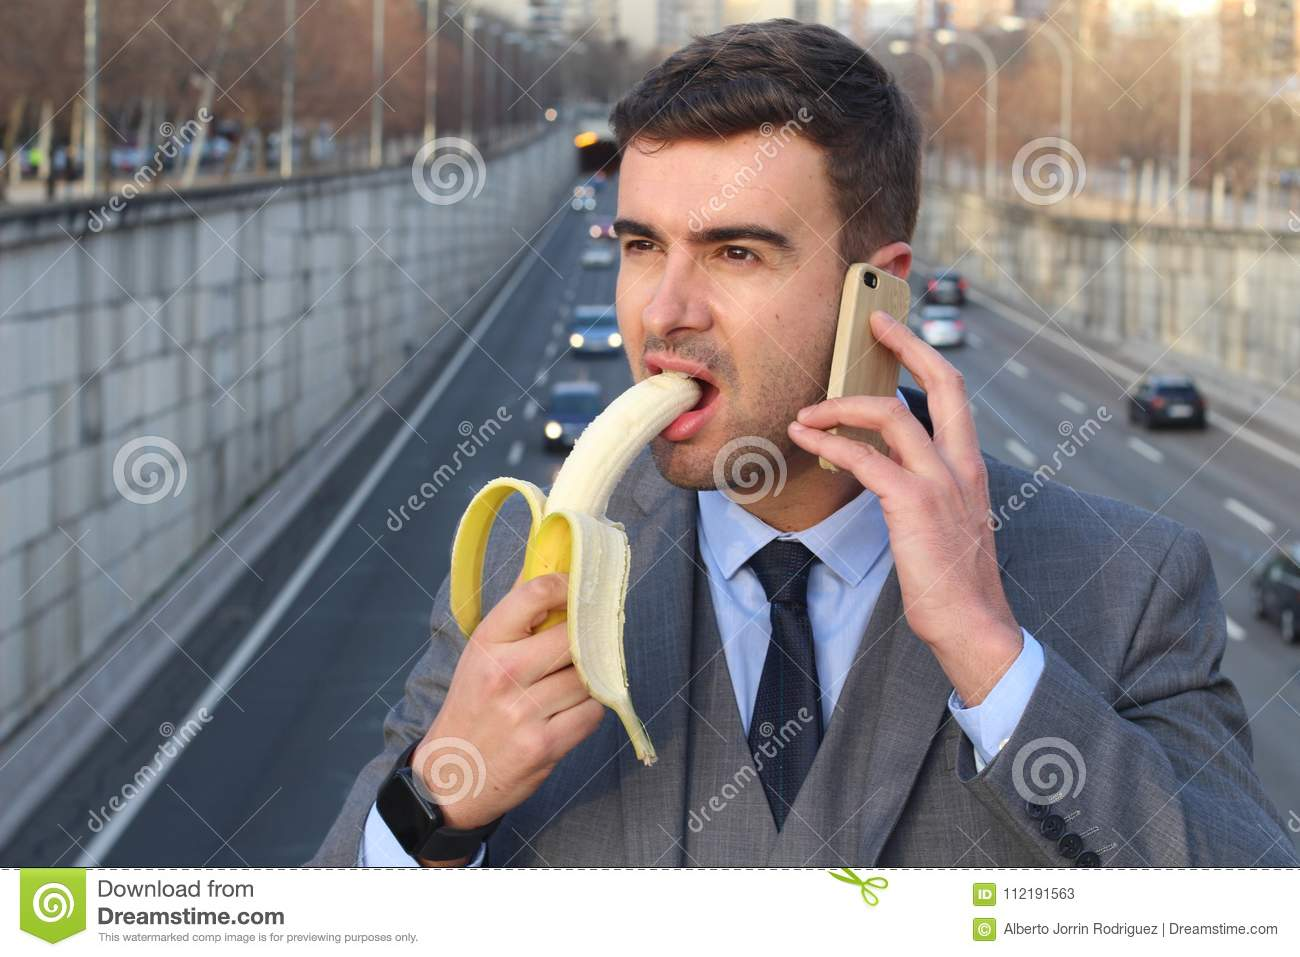 Inappropriate man biting a banana while calling